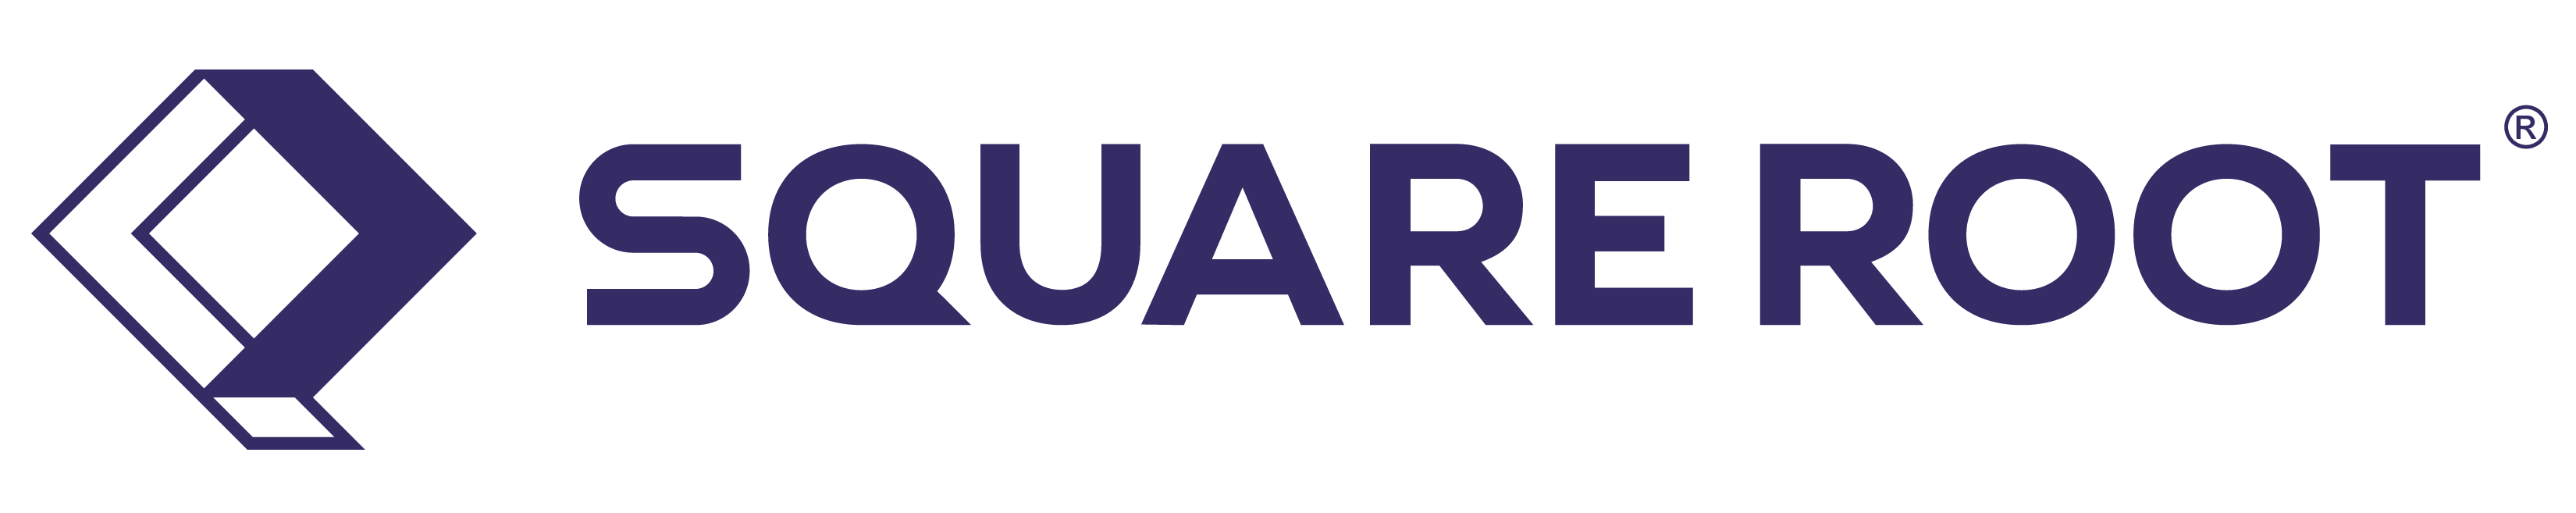 SR_Logo_noTag_Purple_Horizontal-01.png